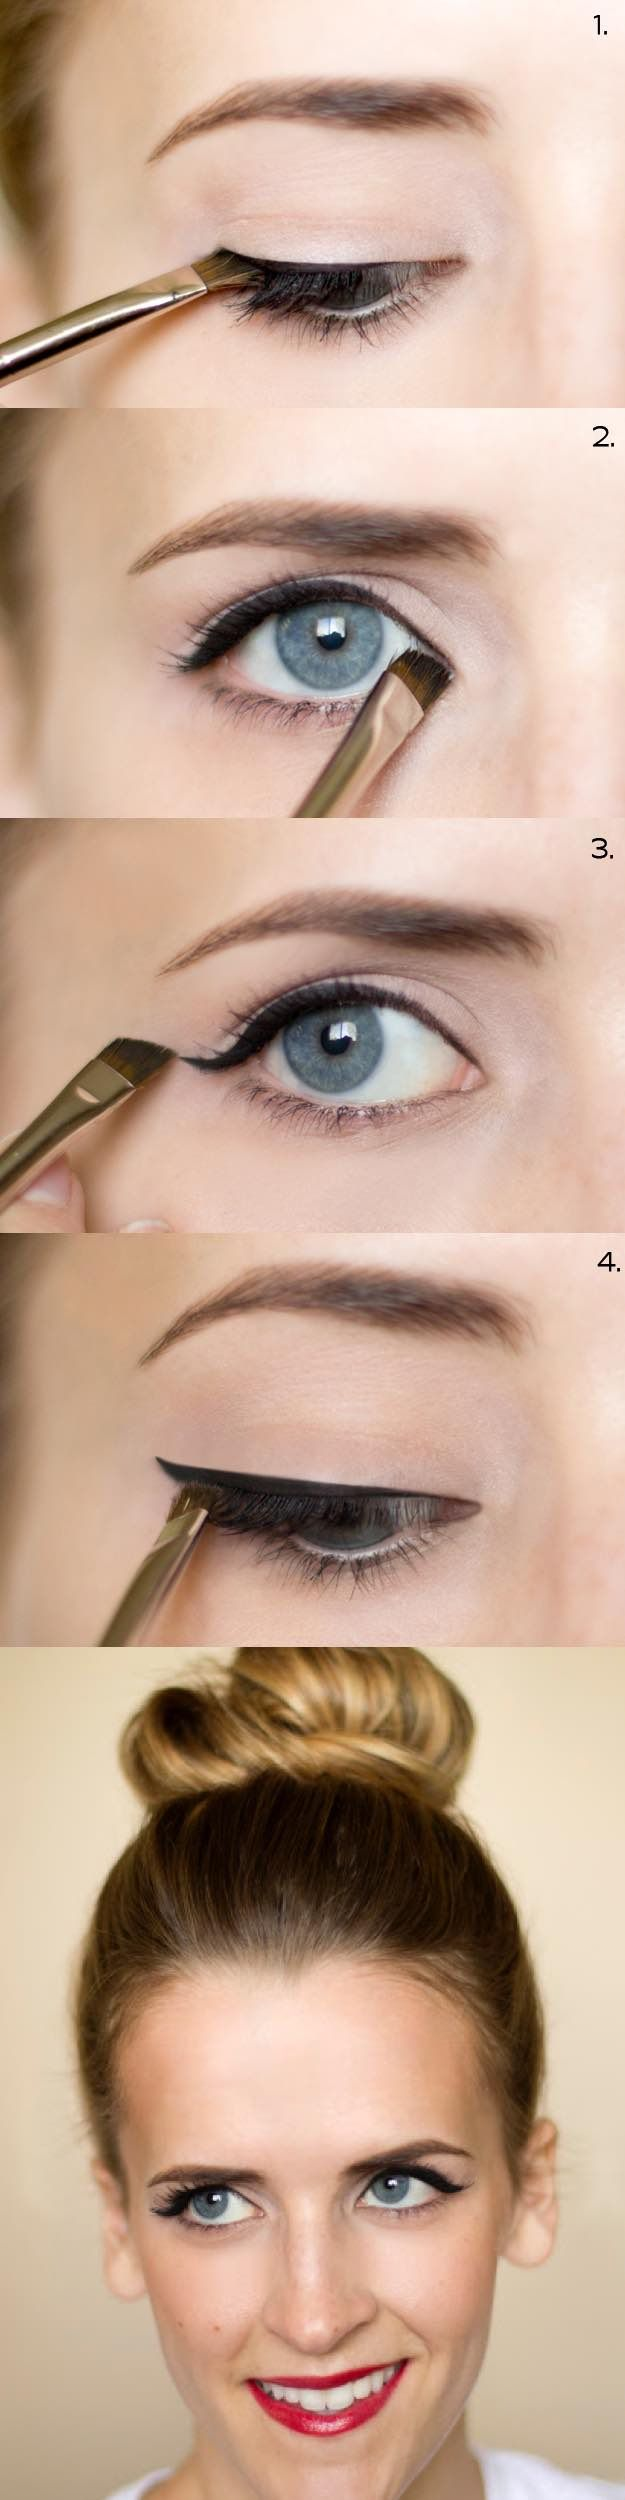 25 Must Know Eyeliner Hacks -How To: Cat Eyeliner -Winged Looks and Easy Makeup ...